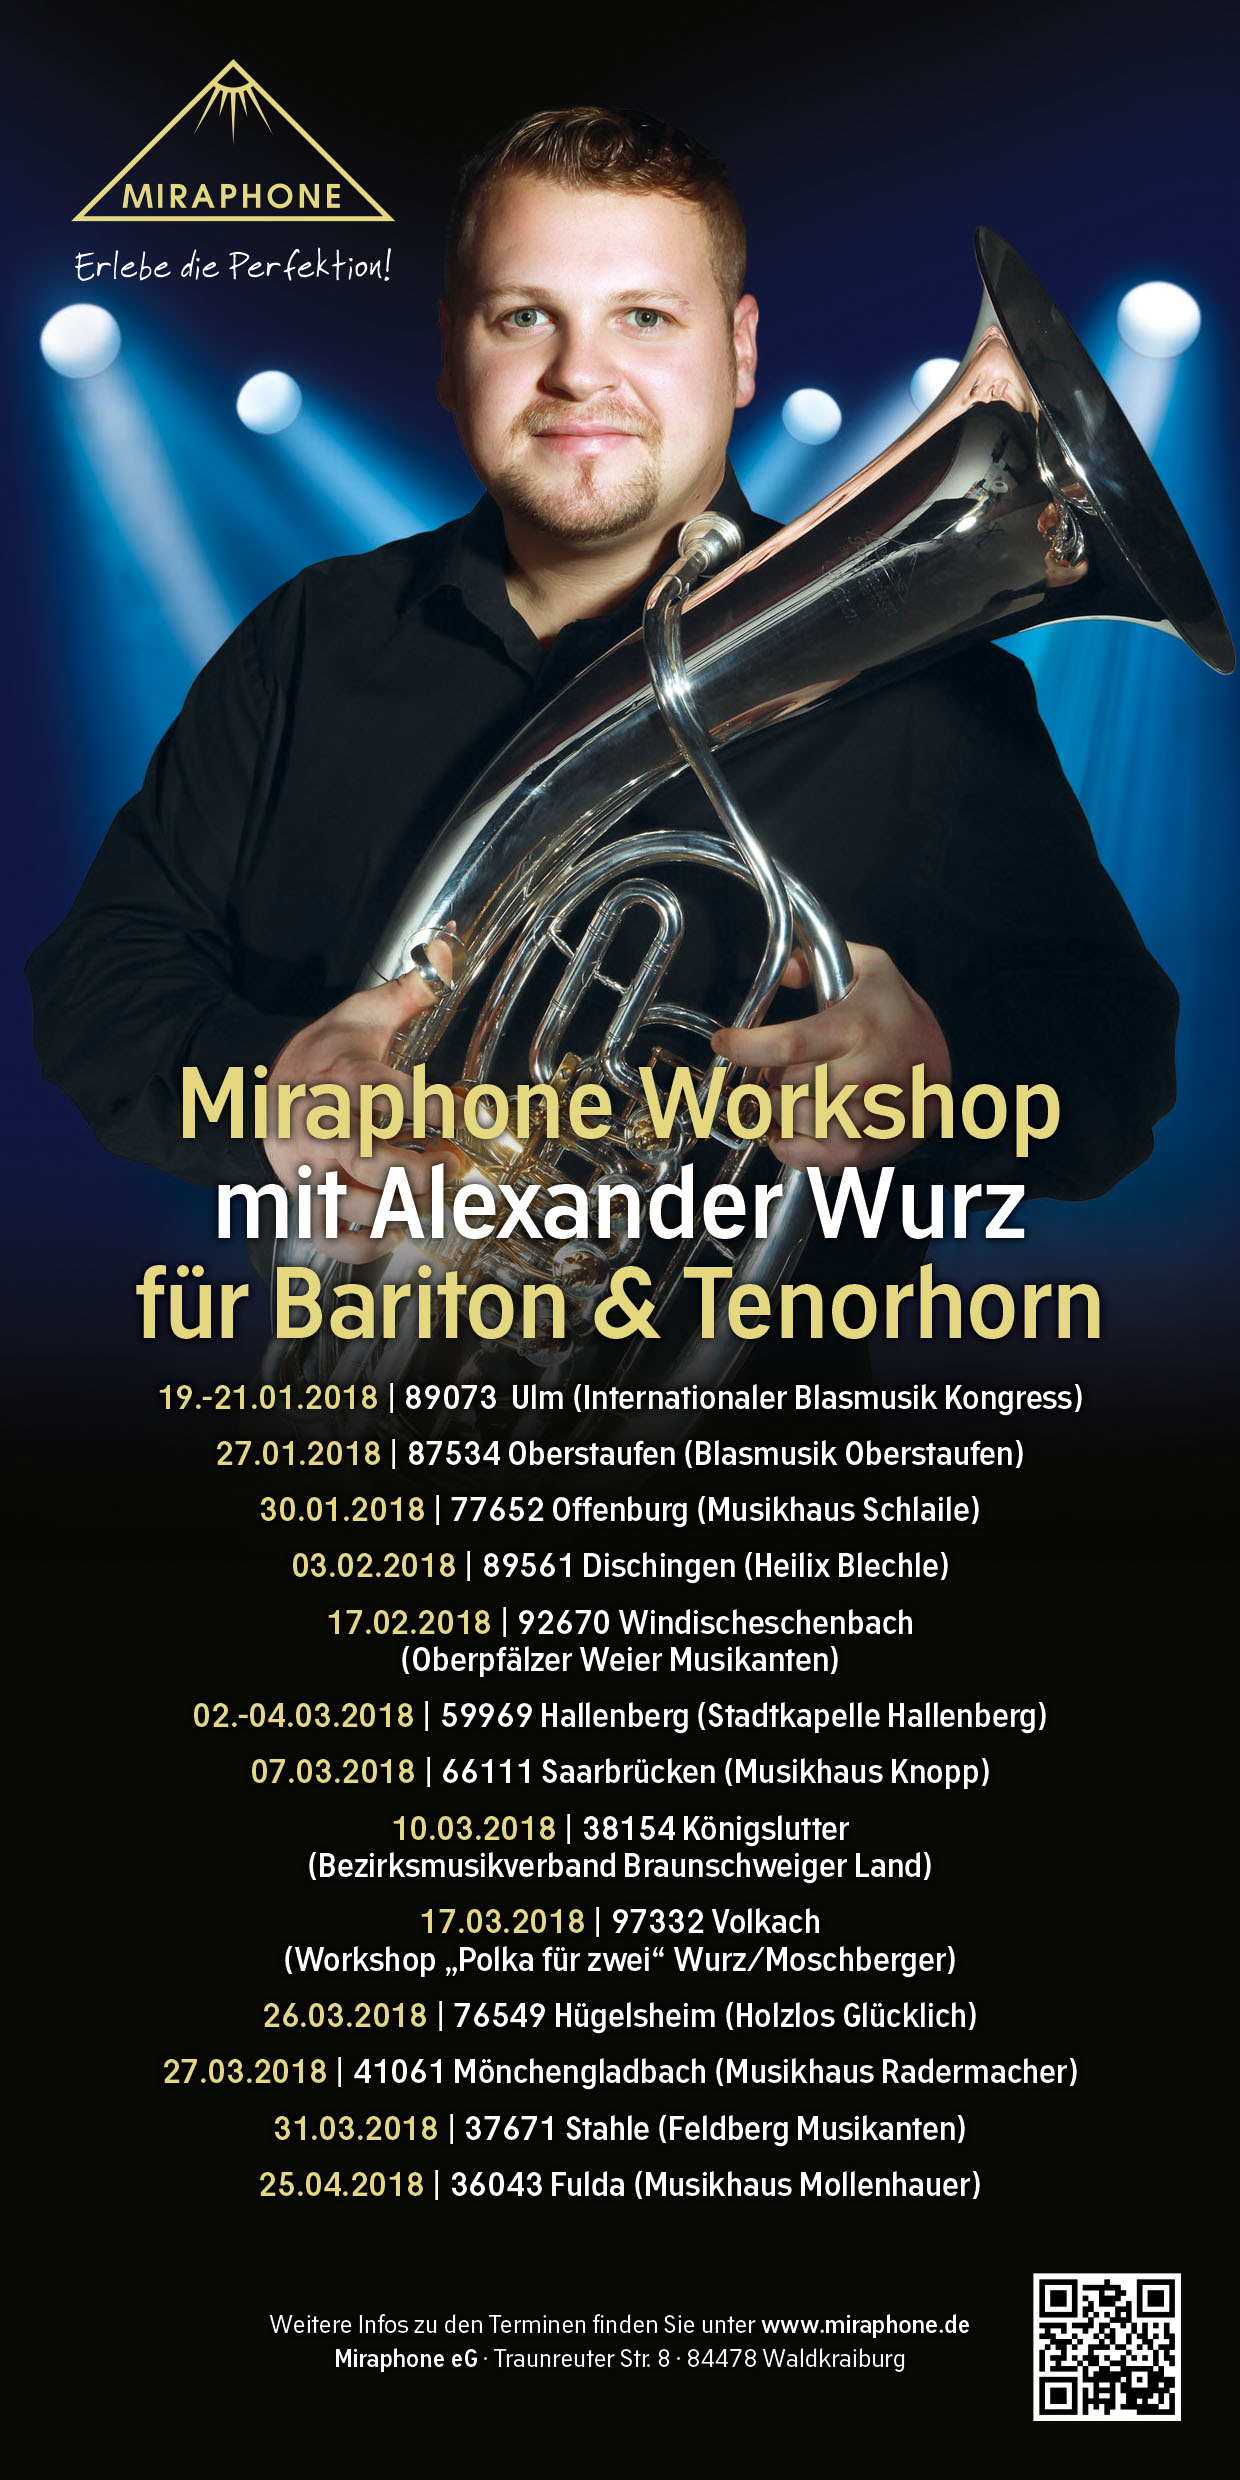 MP-EVENT-PROS Workshop Übersicht 2018_105x210.indd